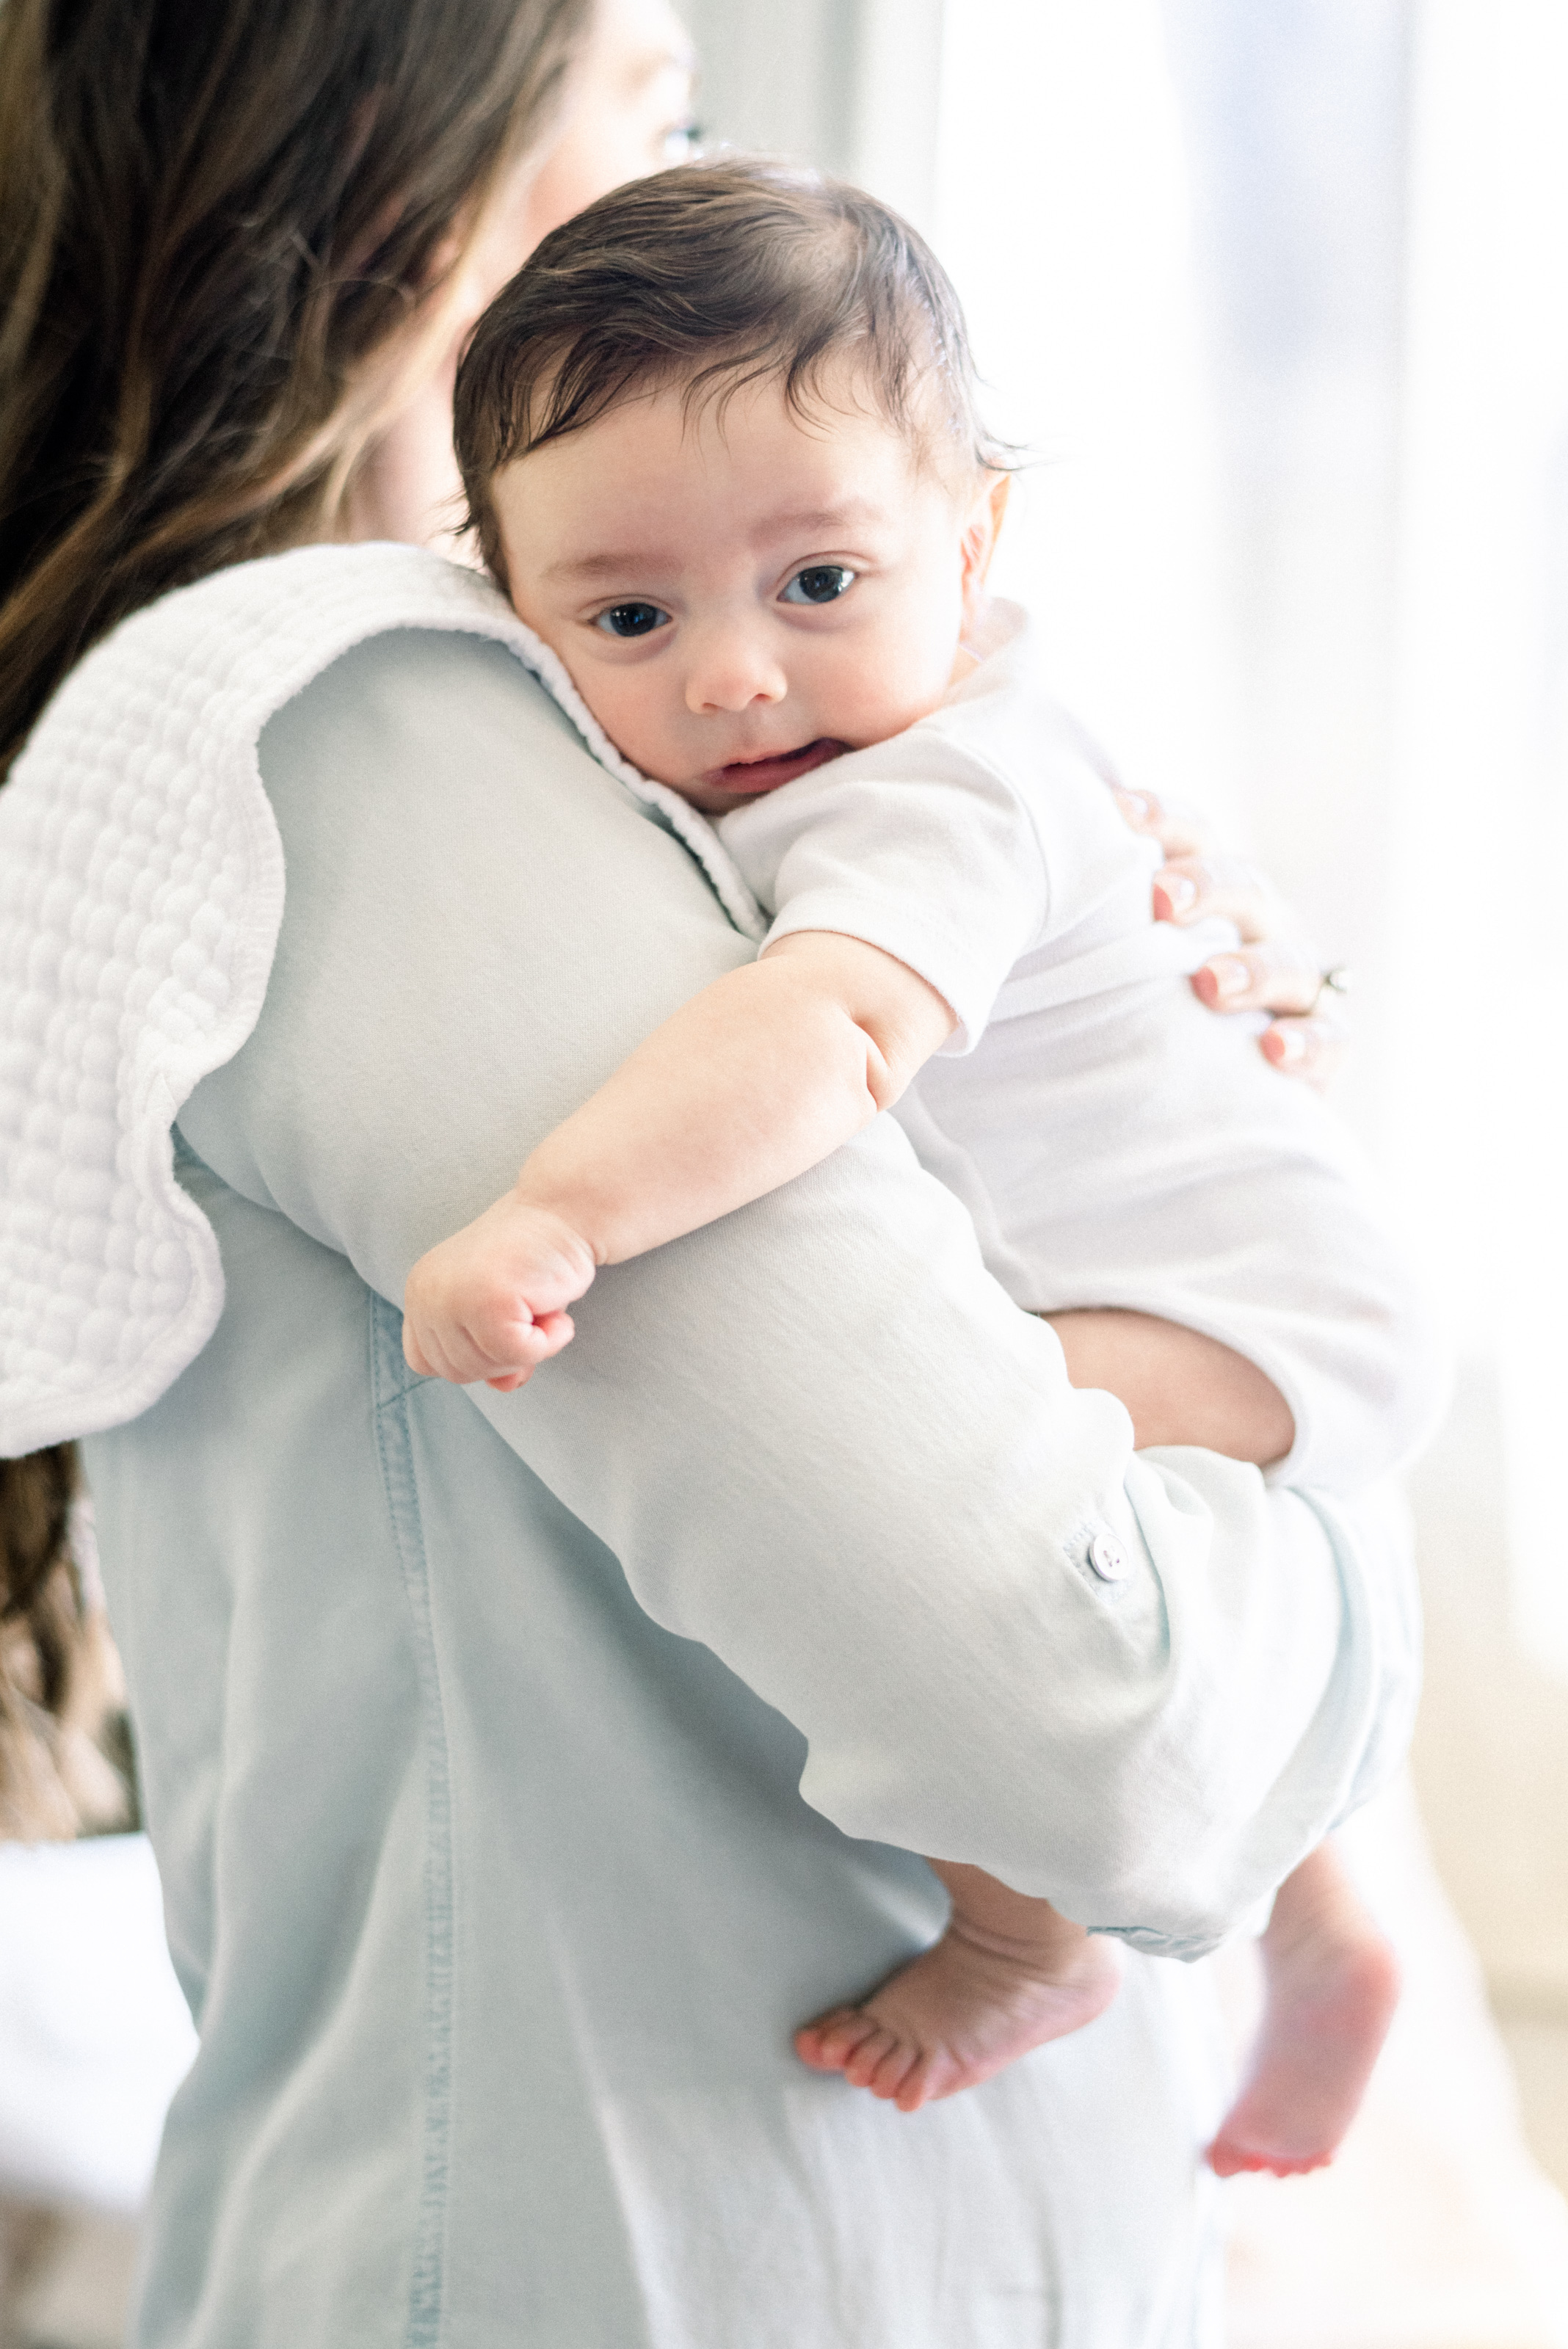 Having a colicky baby is no fun at all. Here are 16 Ways to Comfort Your Colicky Baby that can help your baby feel better!